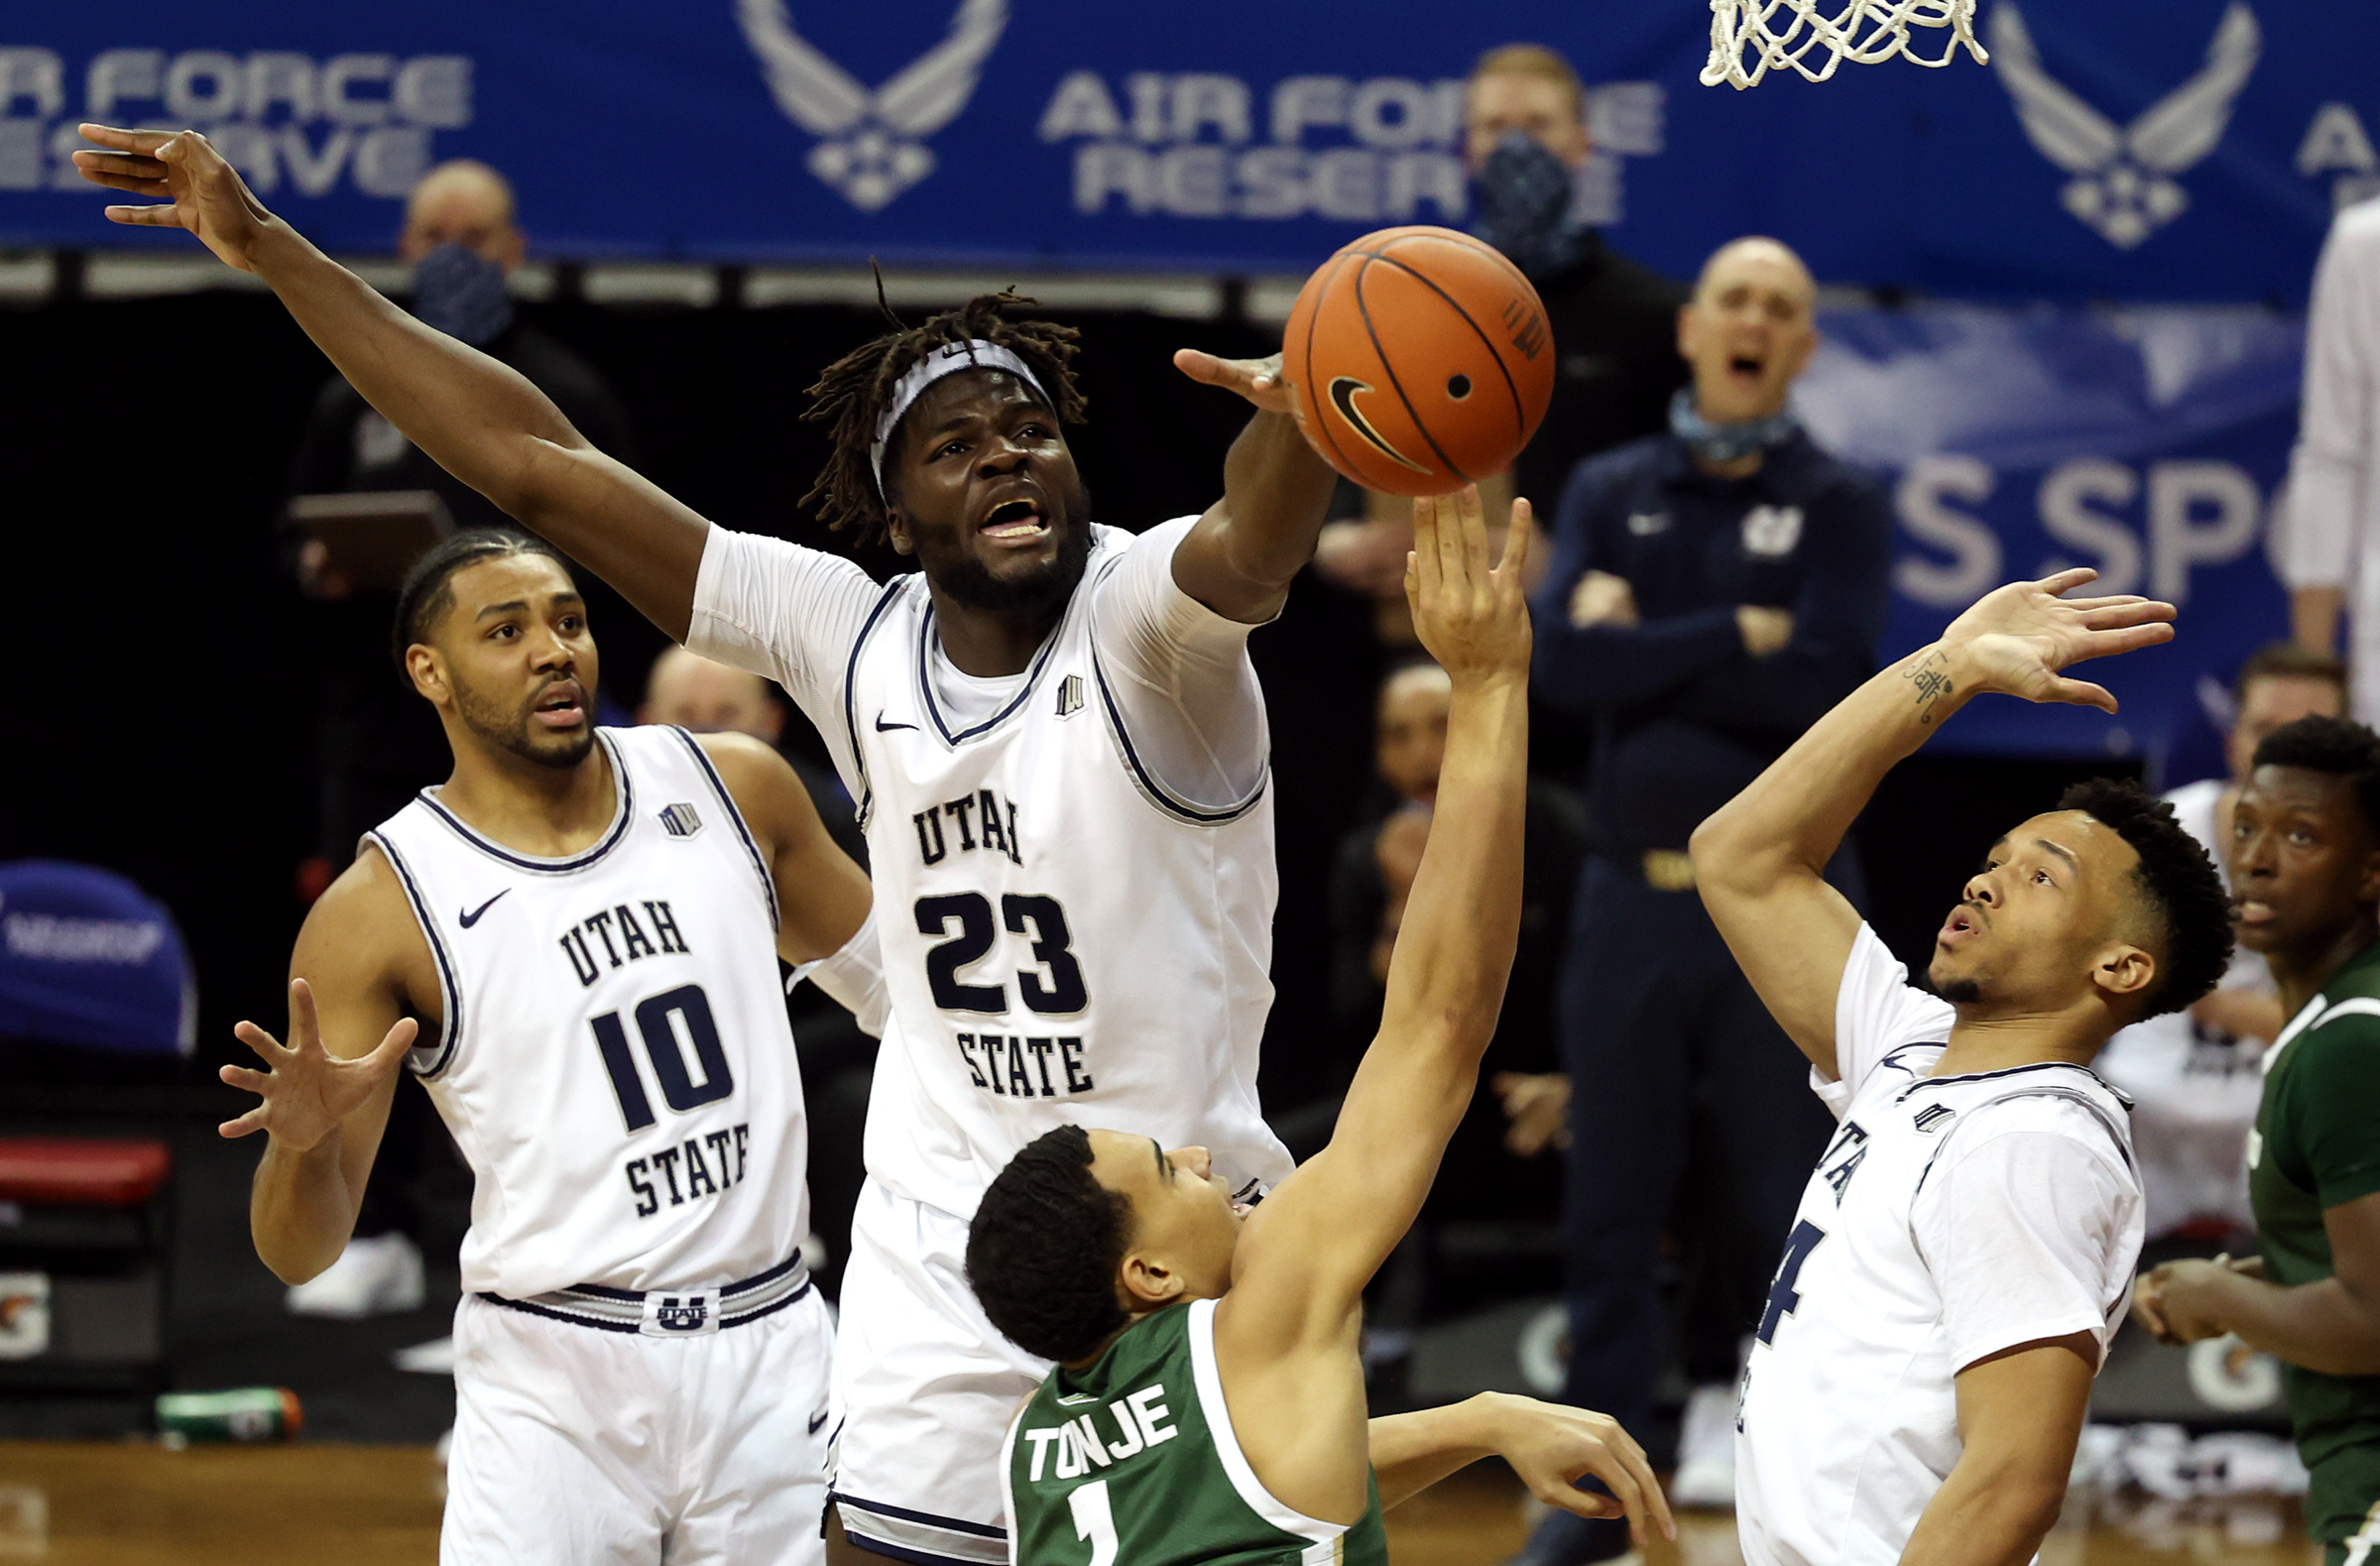 Utah State Aggies center Neemias Queta (23) works to defend Colorado State Rams guard John Tonje (1) as Utah State and Colorado State play in the Mountain West Tournament at the Thomas & Mack Center in Las Vegas on Friday, March 12, 2021.